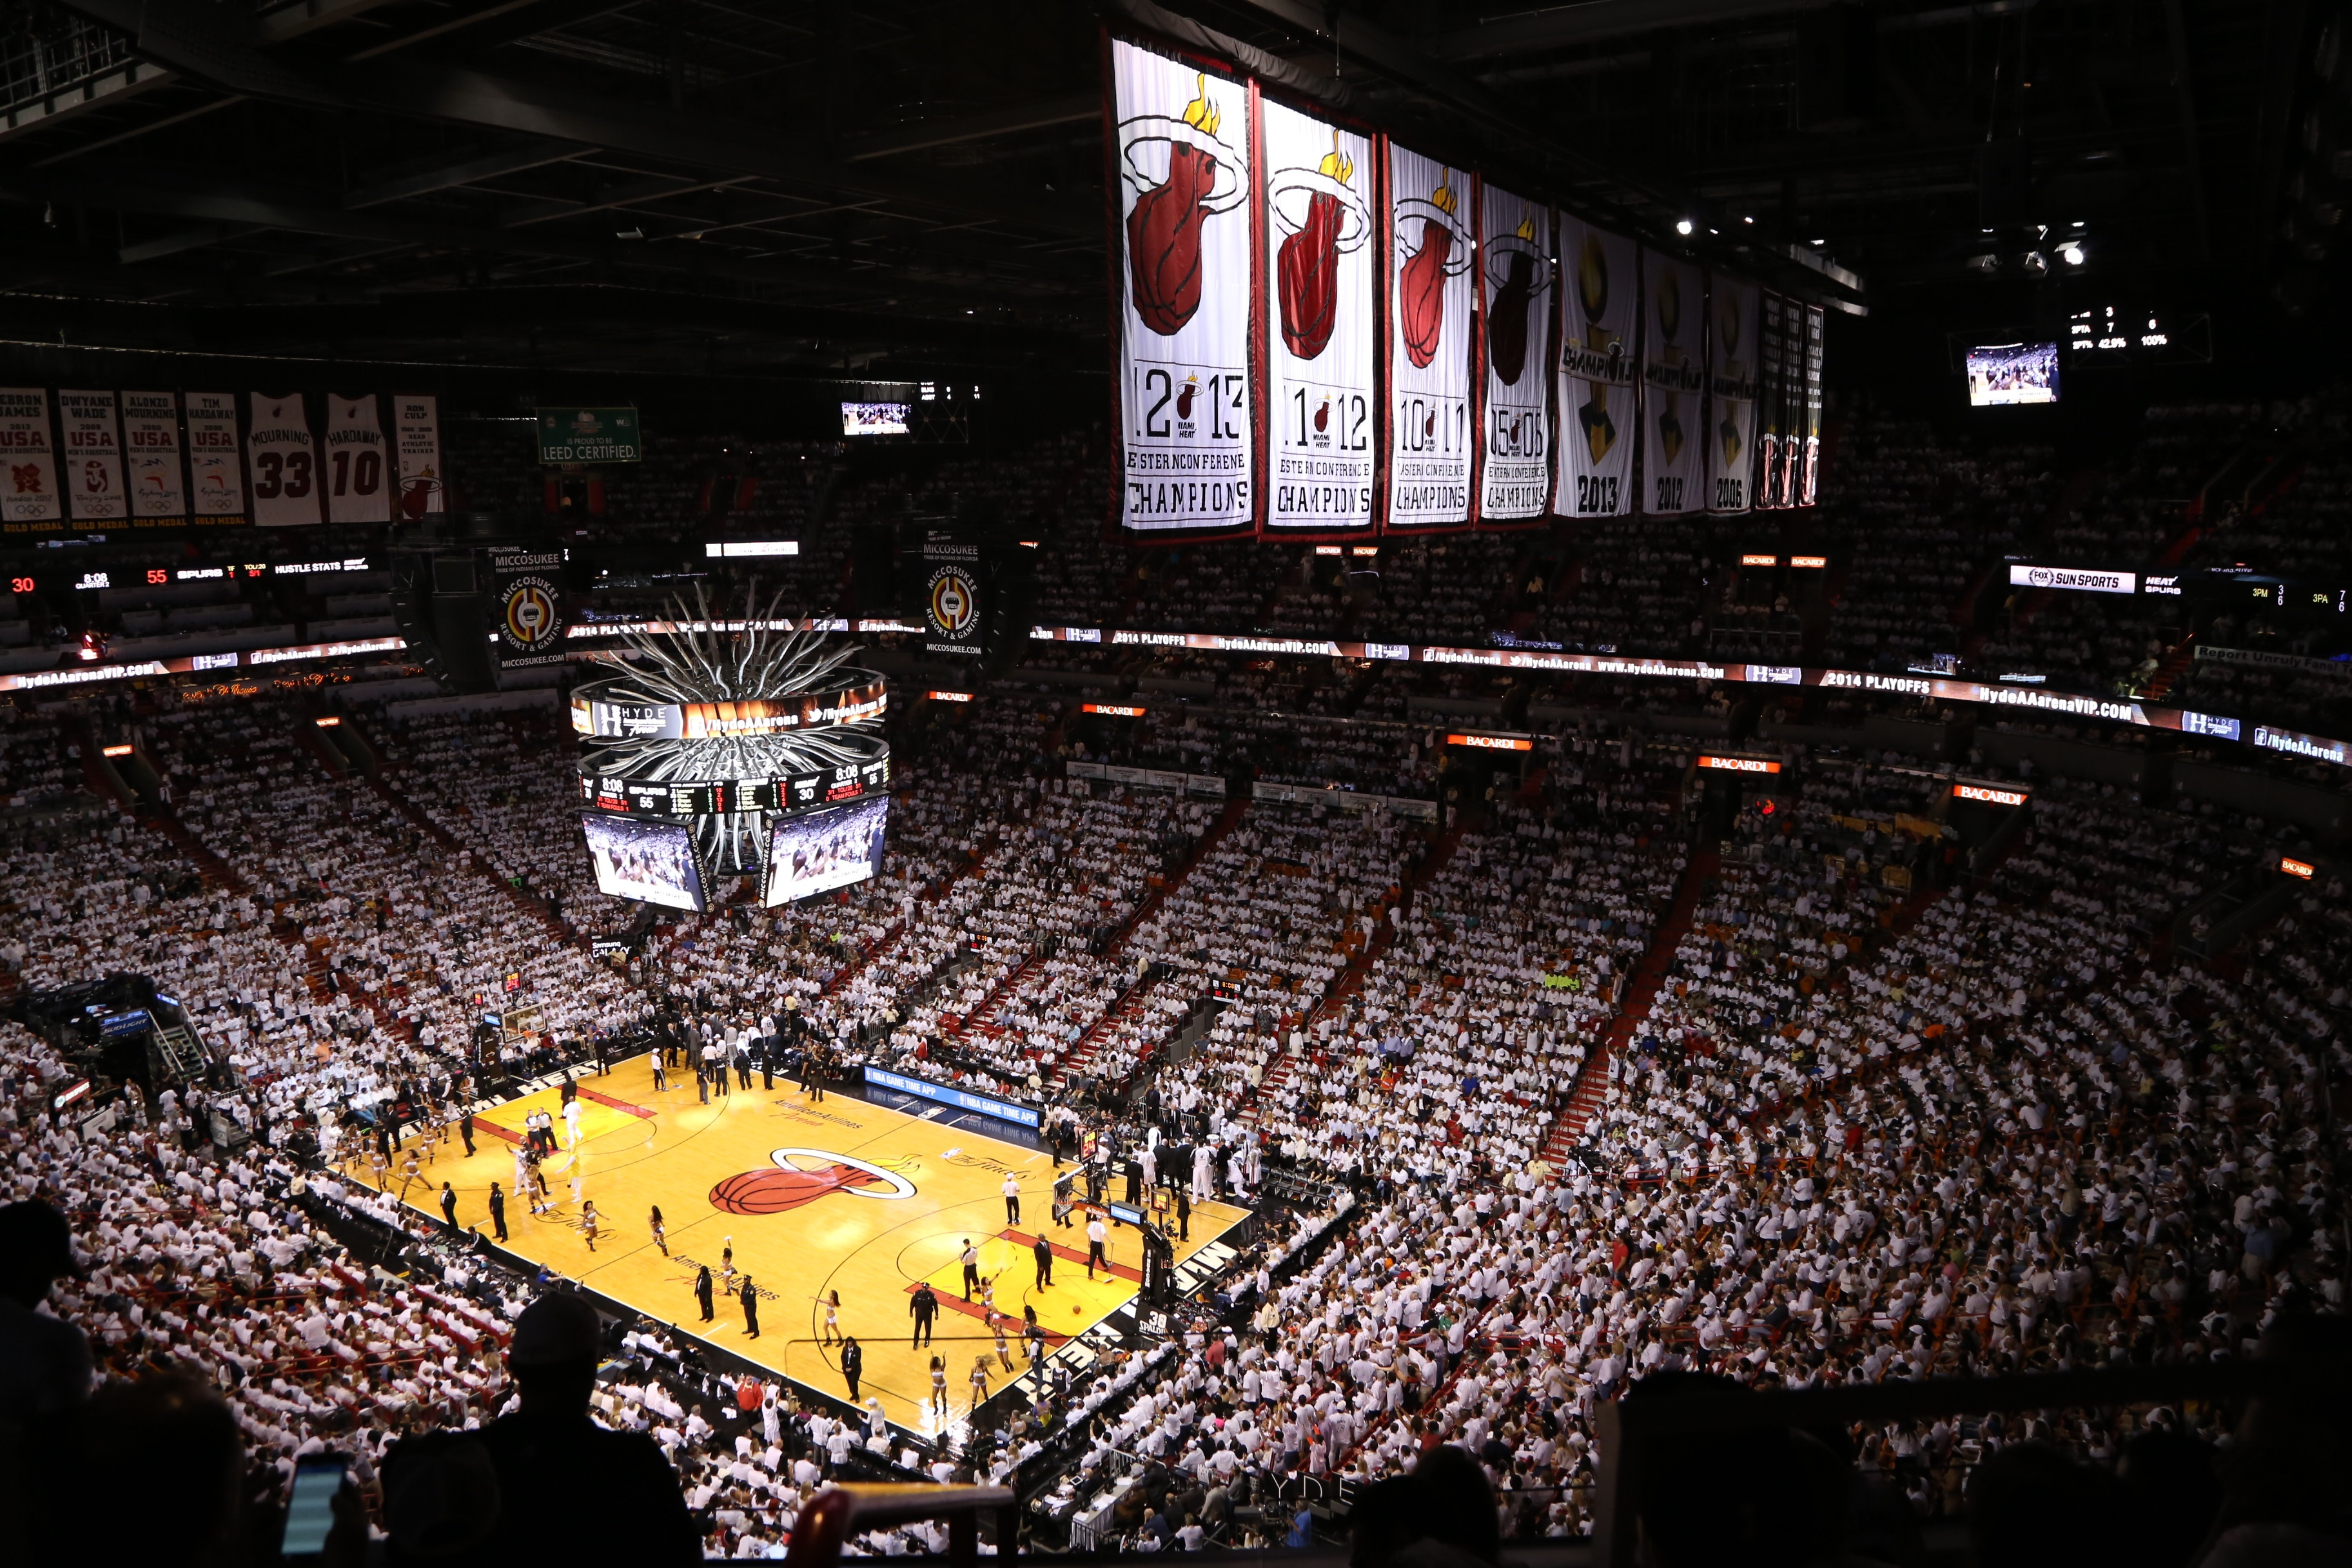 American Airlines Arena Install Eaton Ephesus Sports LED Tech For Miami HEAT NBA Games - SportsTechie blog, Photo Credit David Alvarez/Miami HEAT.